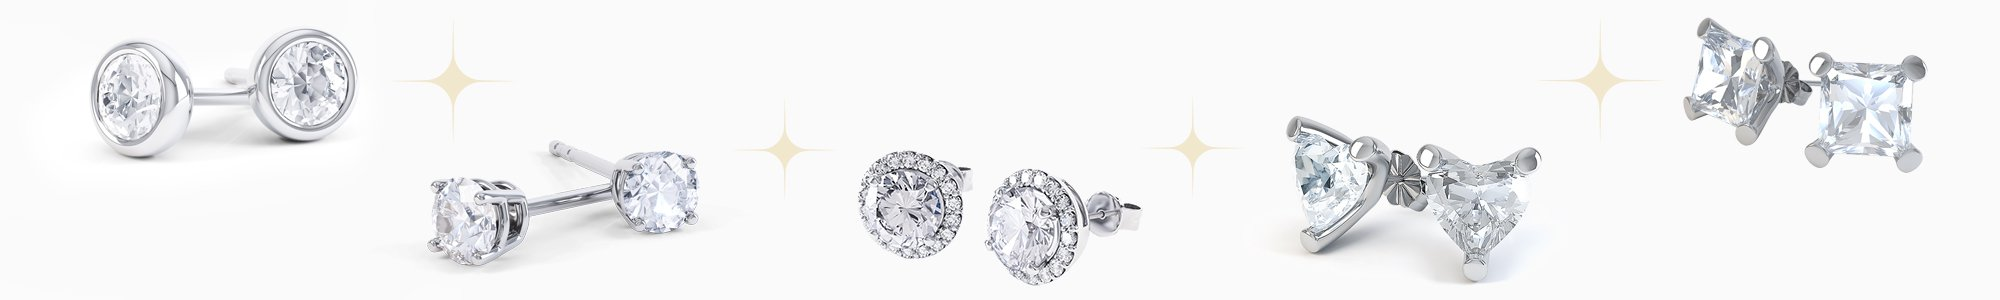 Shop Silver Earrings by Jian London. Buy direct and save from our wide selection of Silver Earrings at the Jian London jewellery Store. Free UK Delivery